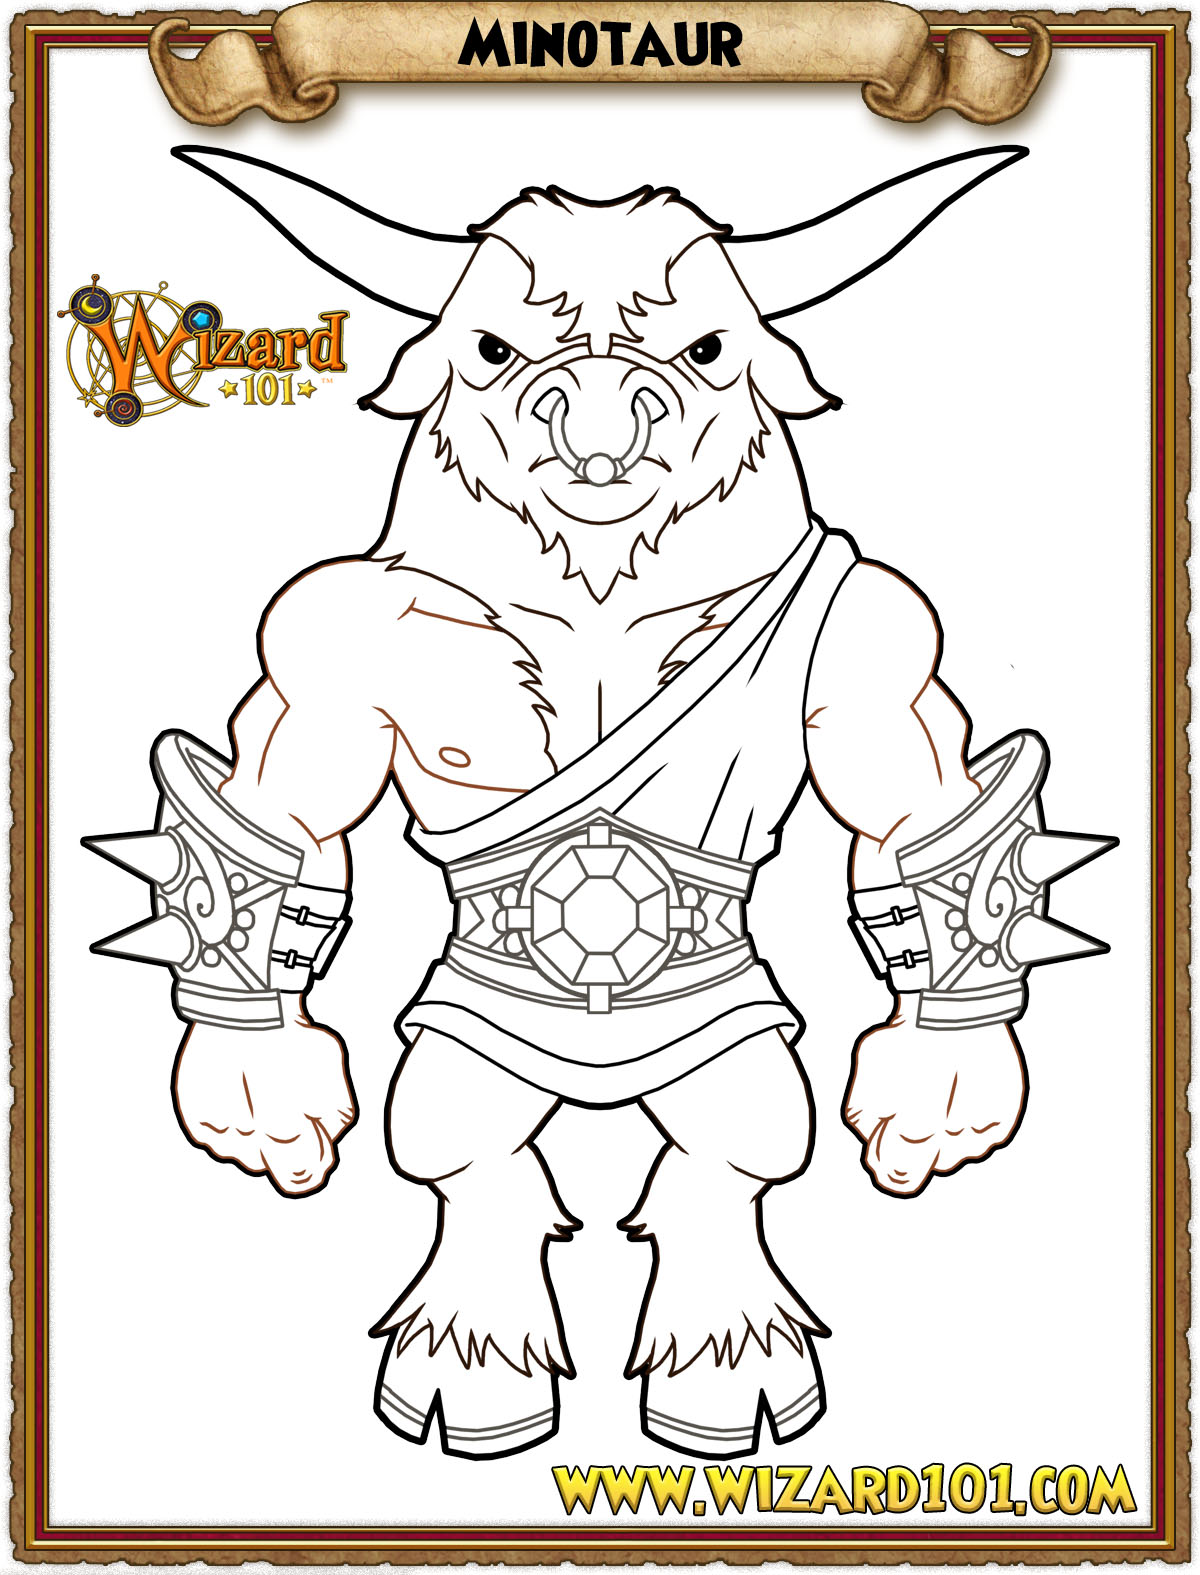 theseus coloring pages - photo#27